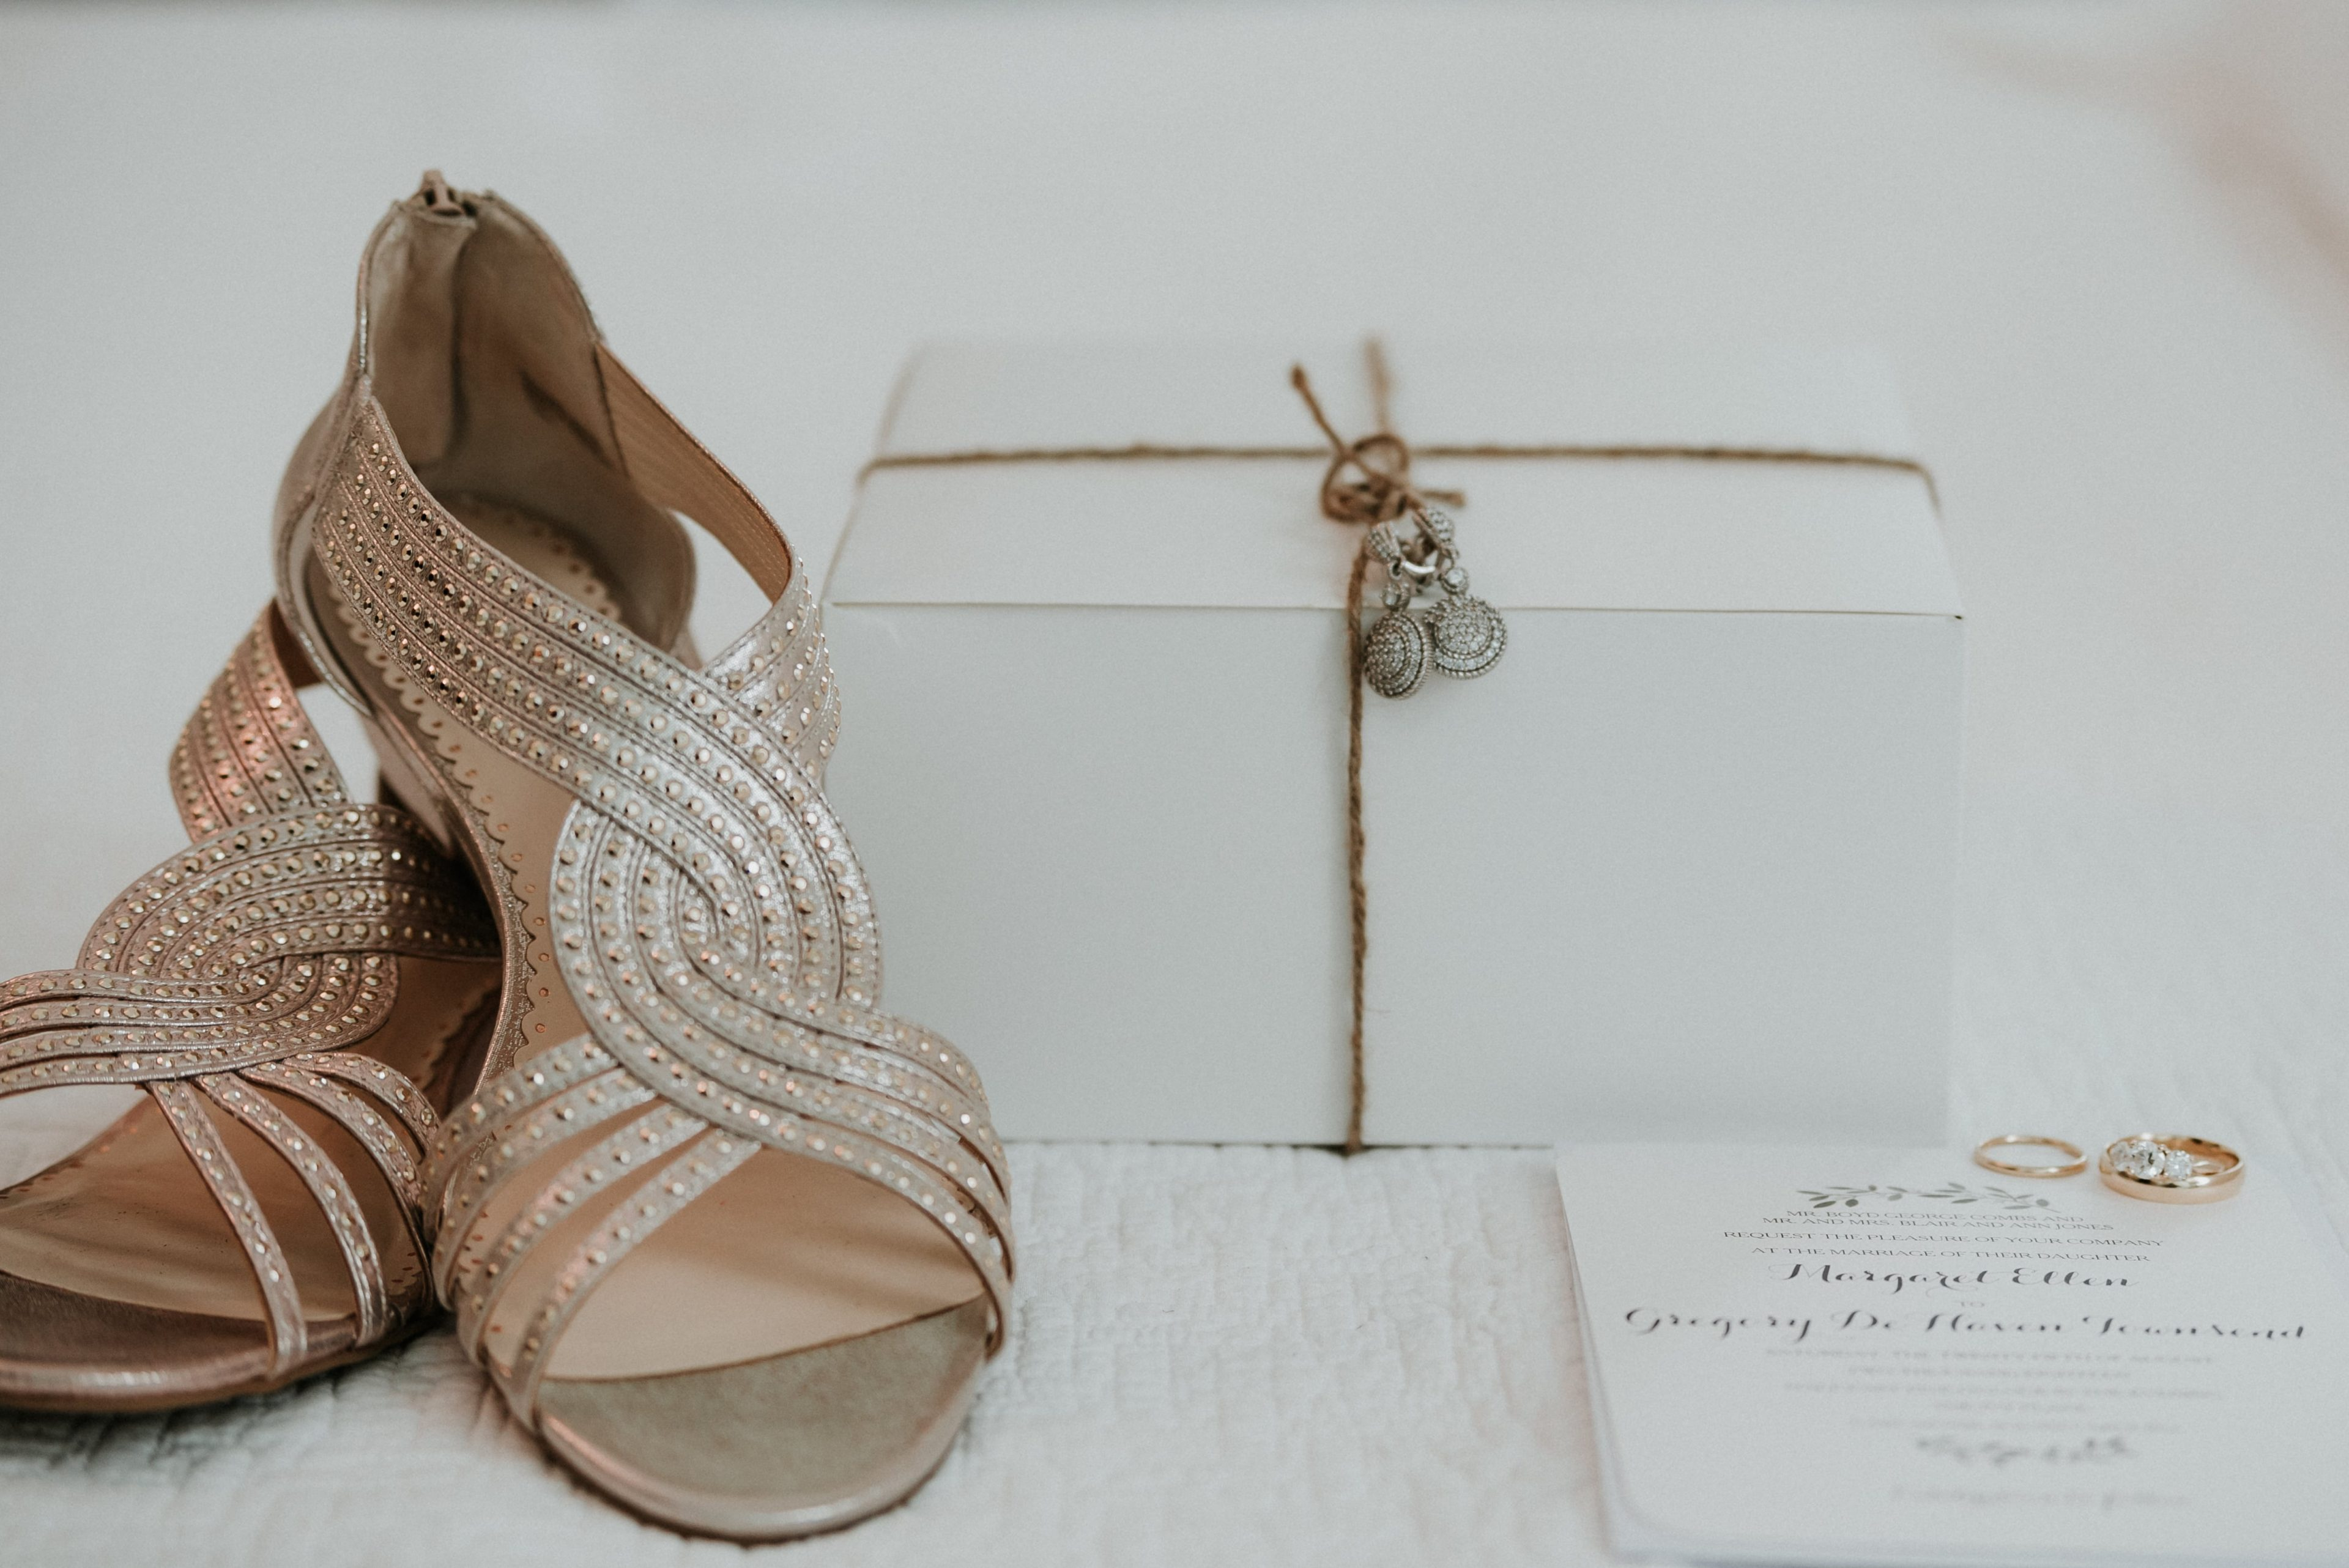 Bride created a custom welcome box for her out of town guests captured here with her bridal shoes and jewelry by Shutter Owl Photography